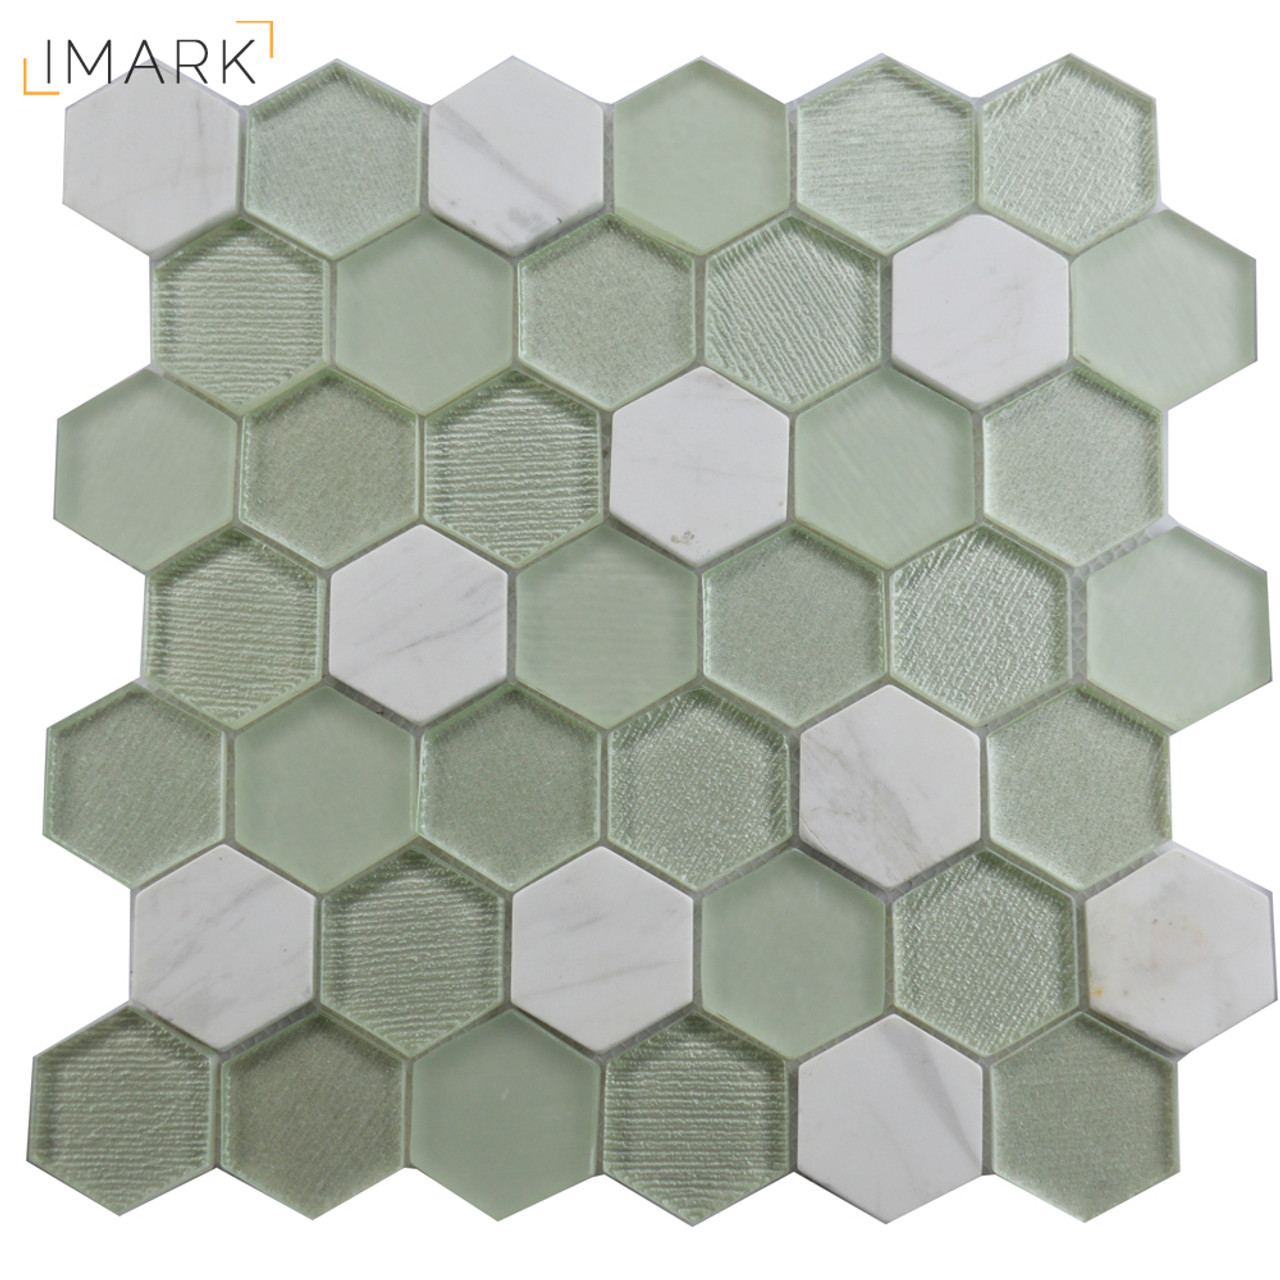 Green hexagon volakas marble mosaic tile glass kitchen backsplash green hexagon volakas marble mosaic tile glass kitchen backsplash dailygadgetfo Image collections